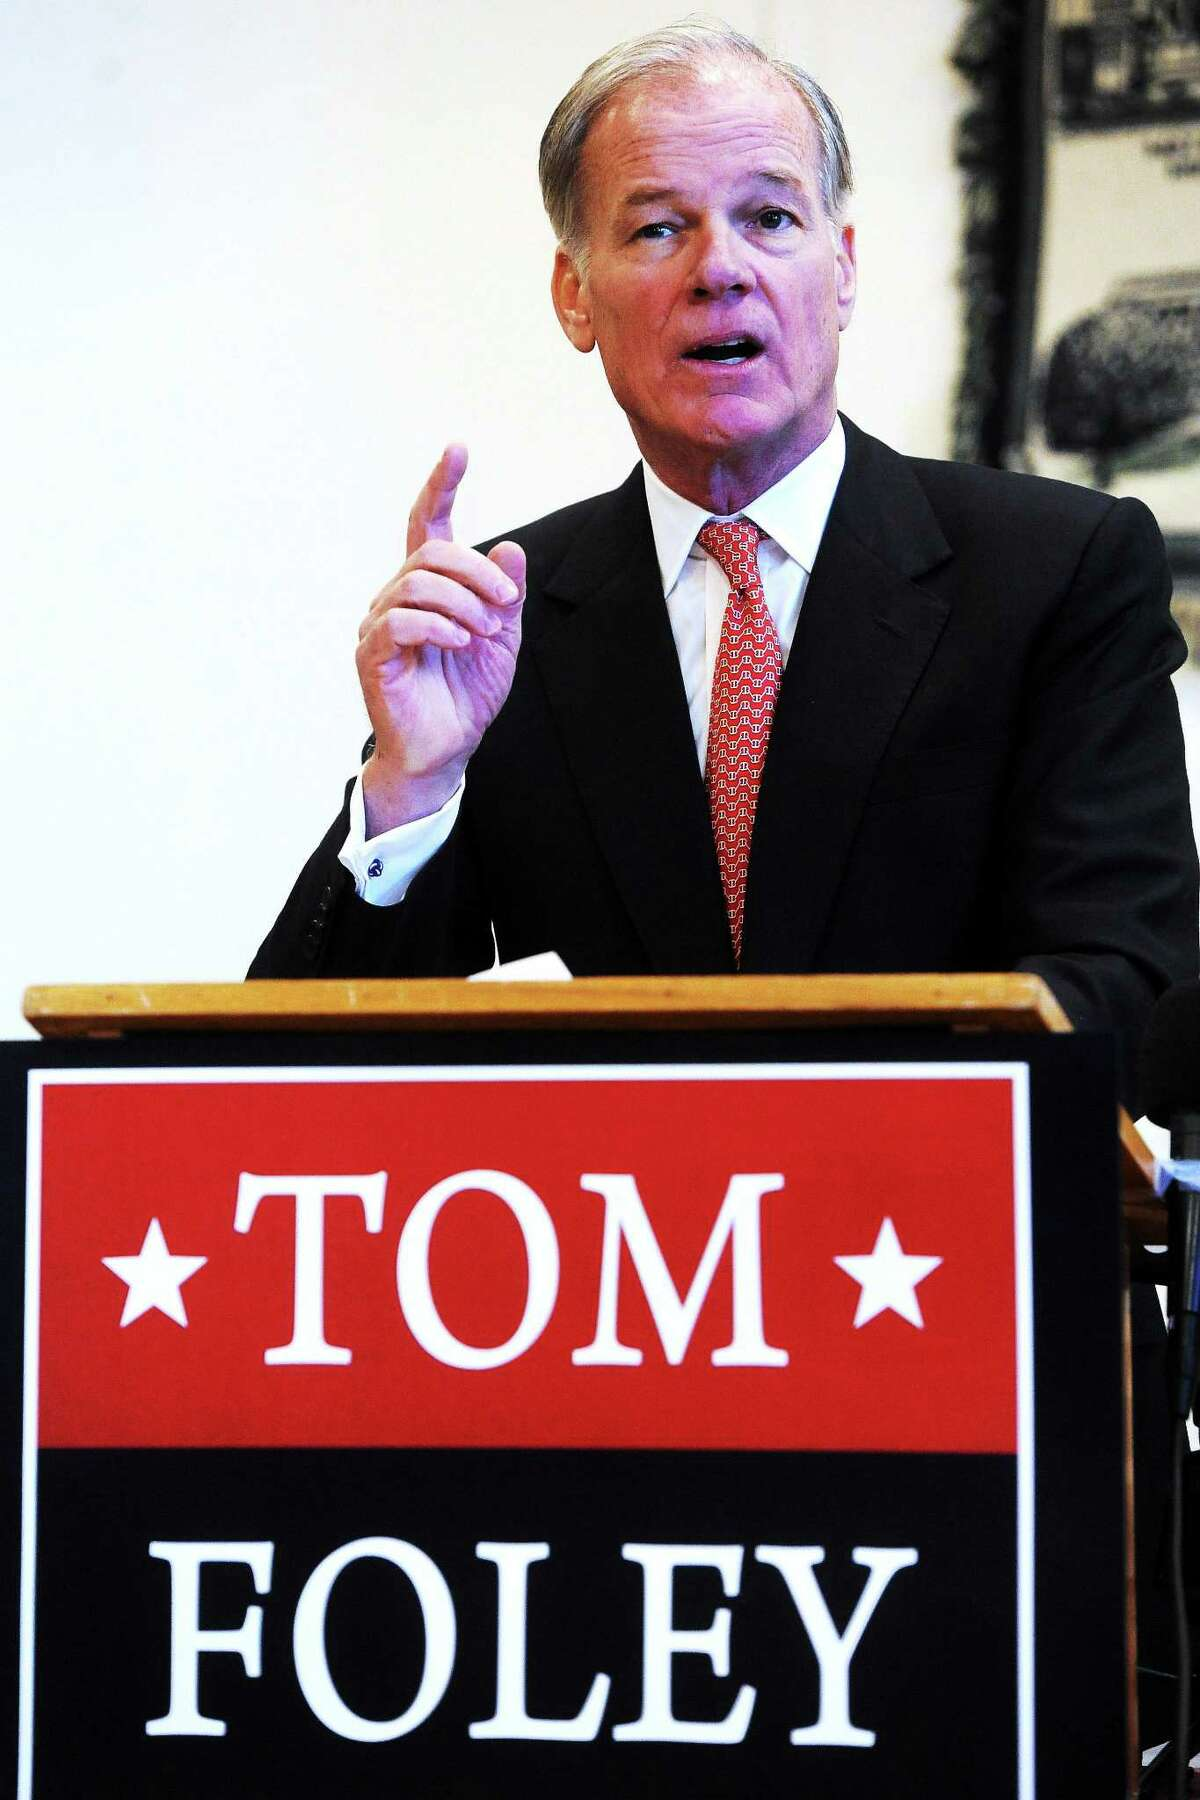 January 29, 2014 Waterbury Tom Foley of Greenwich announced he would run for the Republican nominee for governor, at the Wheeler Young VFW Post 201 in Waterbury.